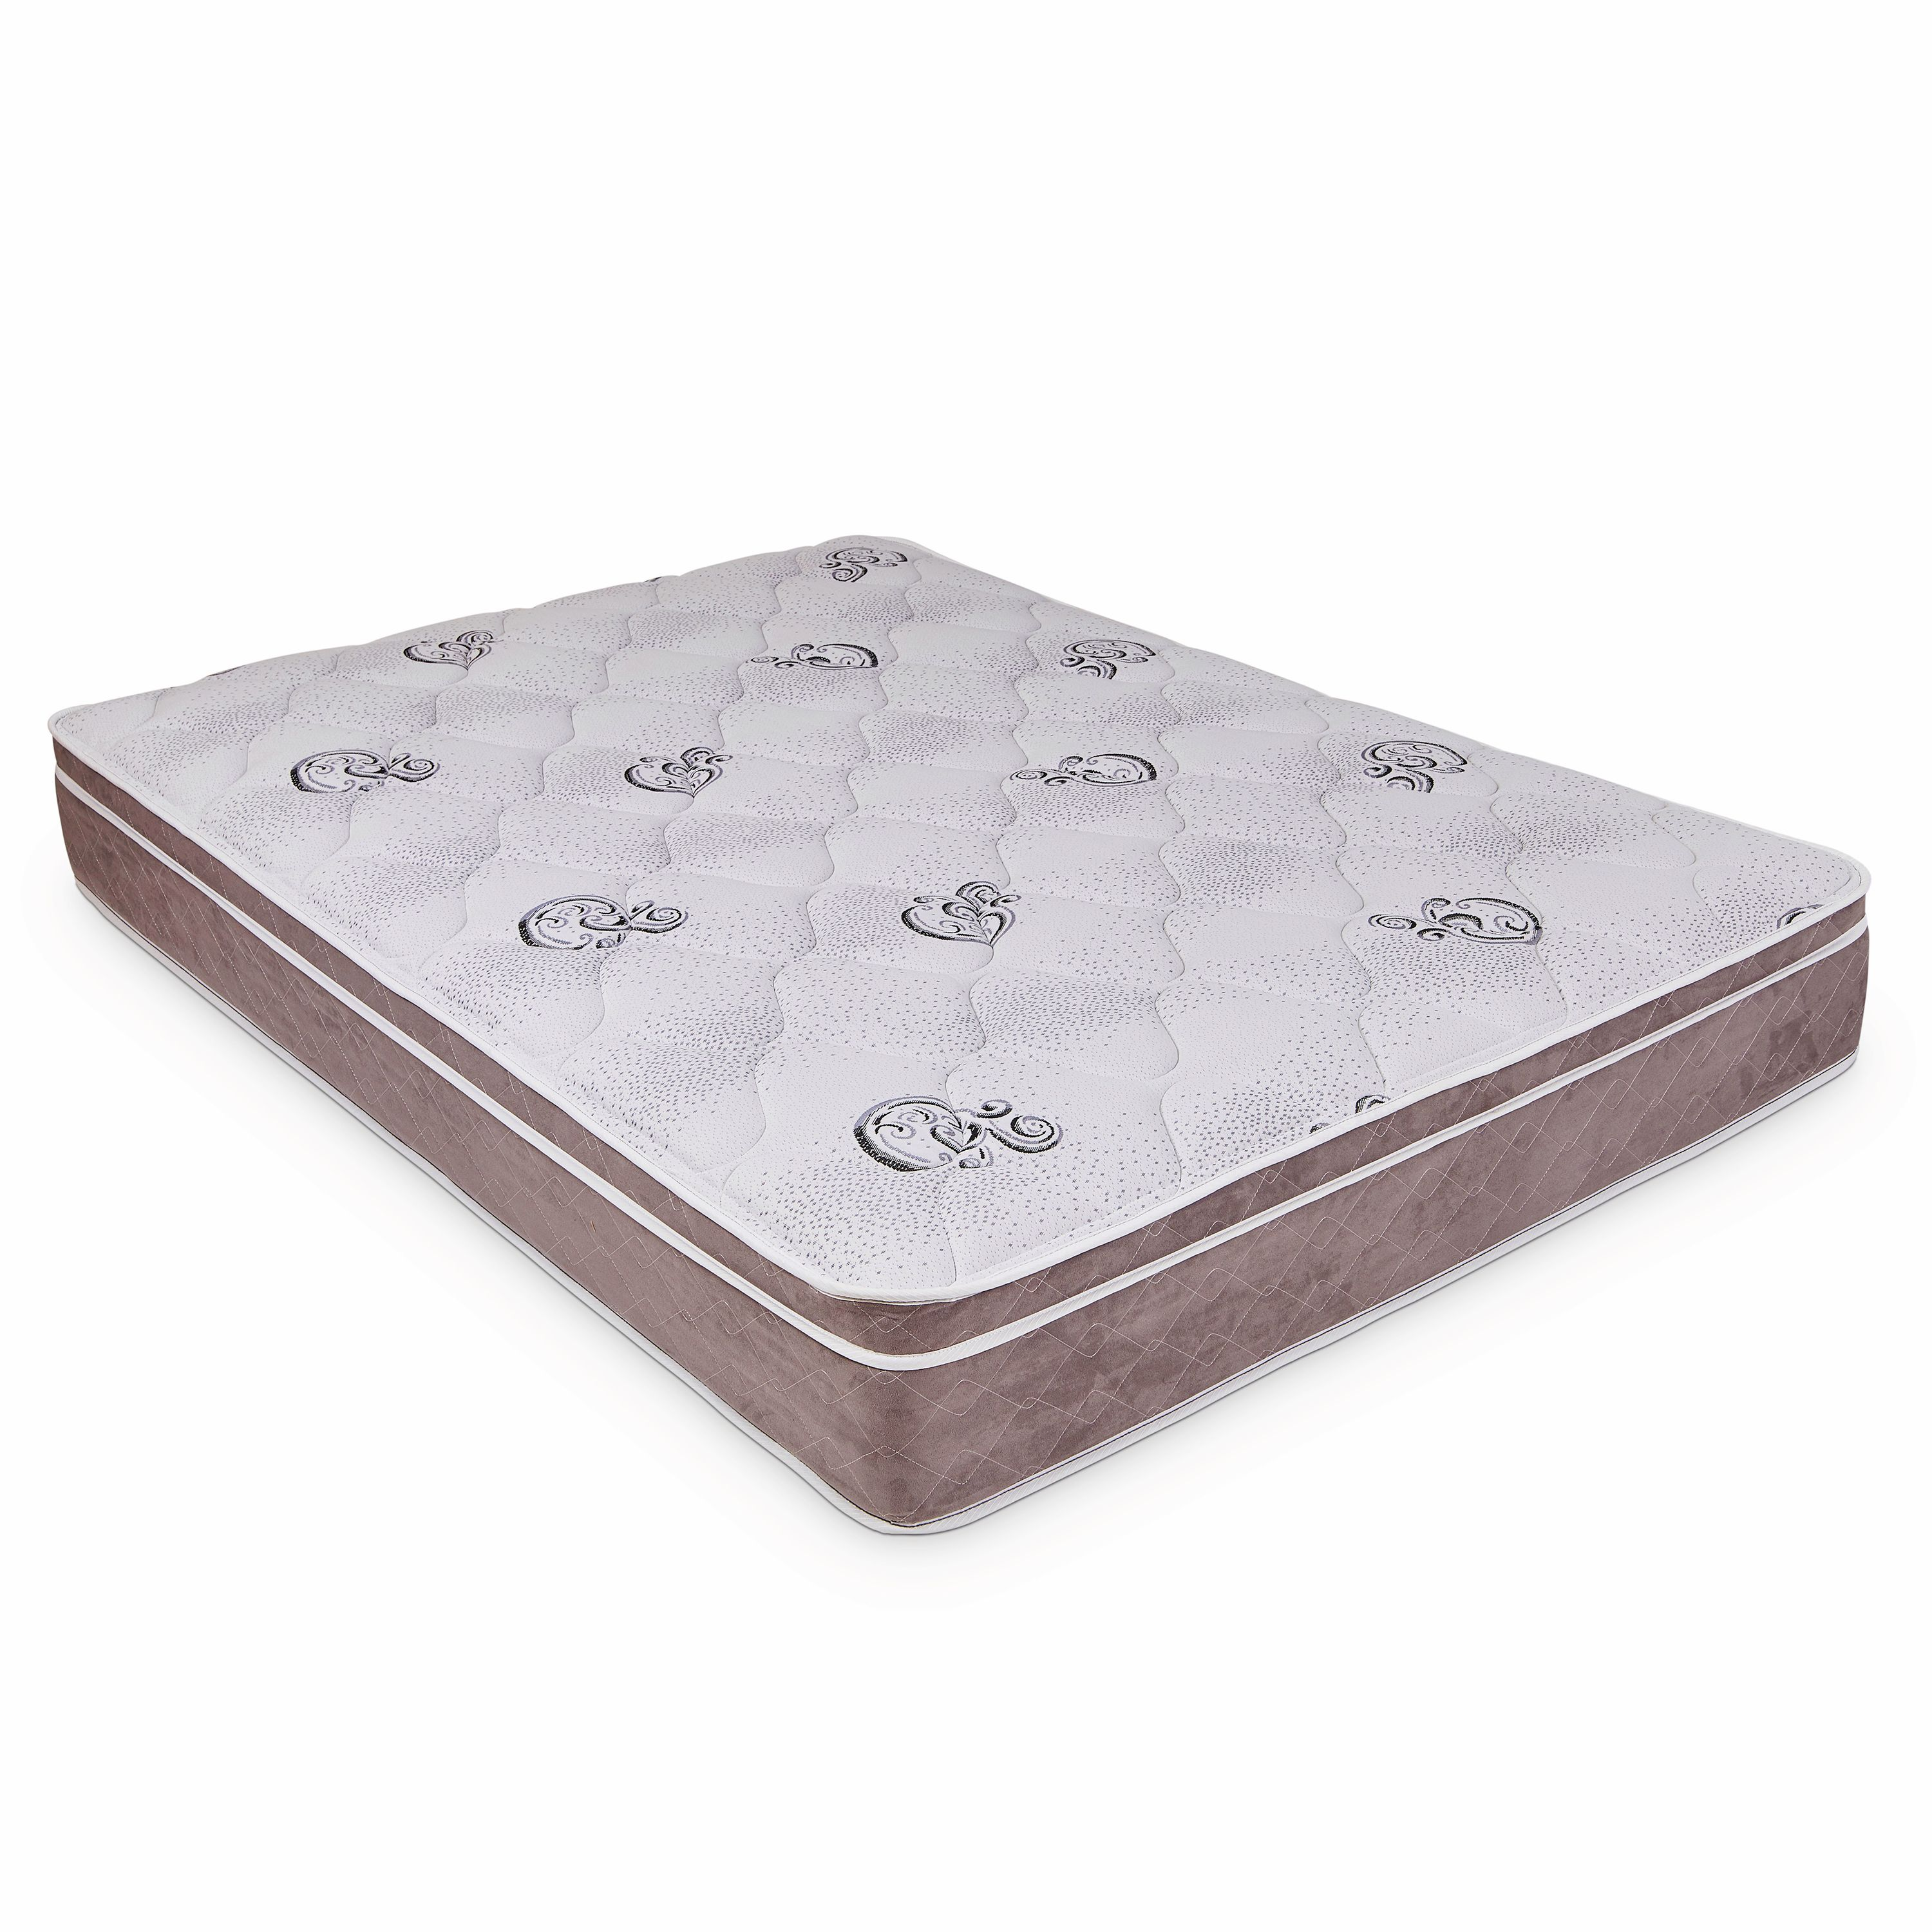 Wolf Ortho Ultra Pillow Top Mattress, Multiple Sizes